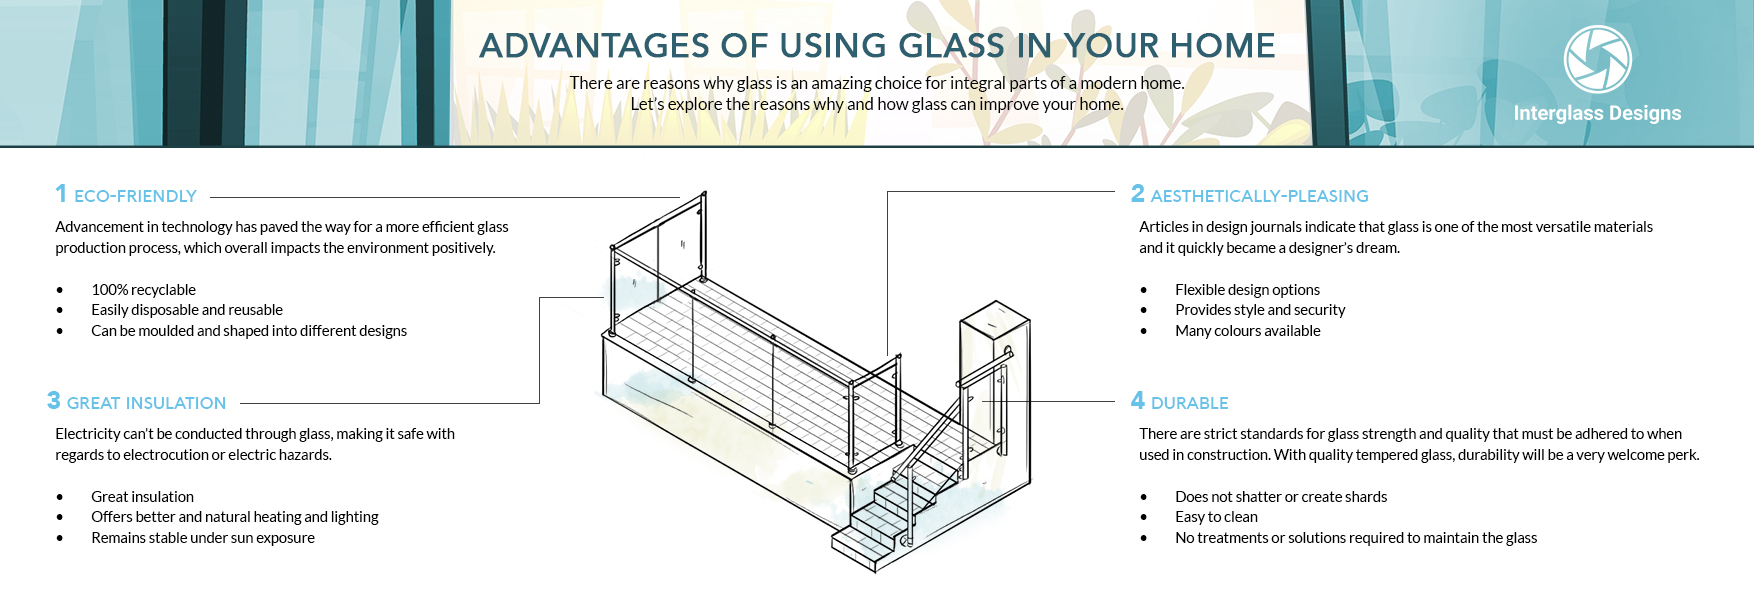 Advantages of using glass in your home infographic